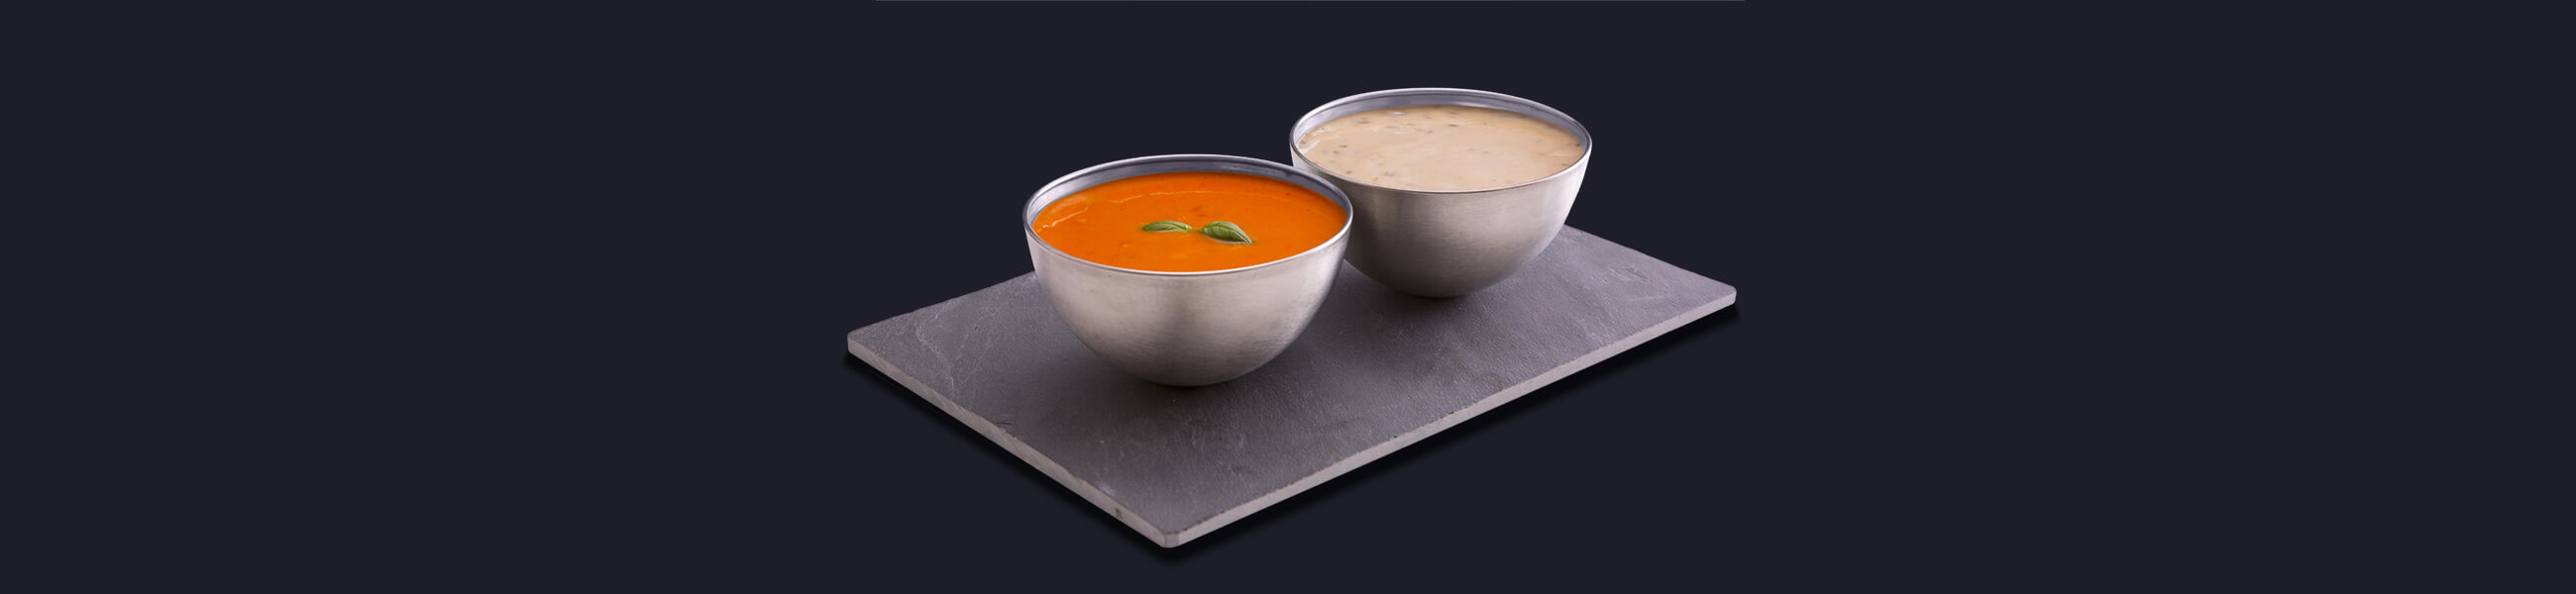 Soups and ready meals containing salt